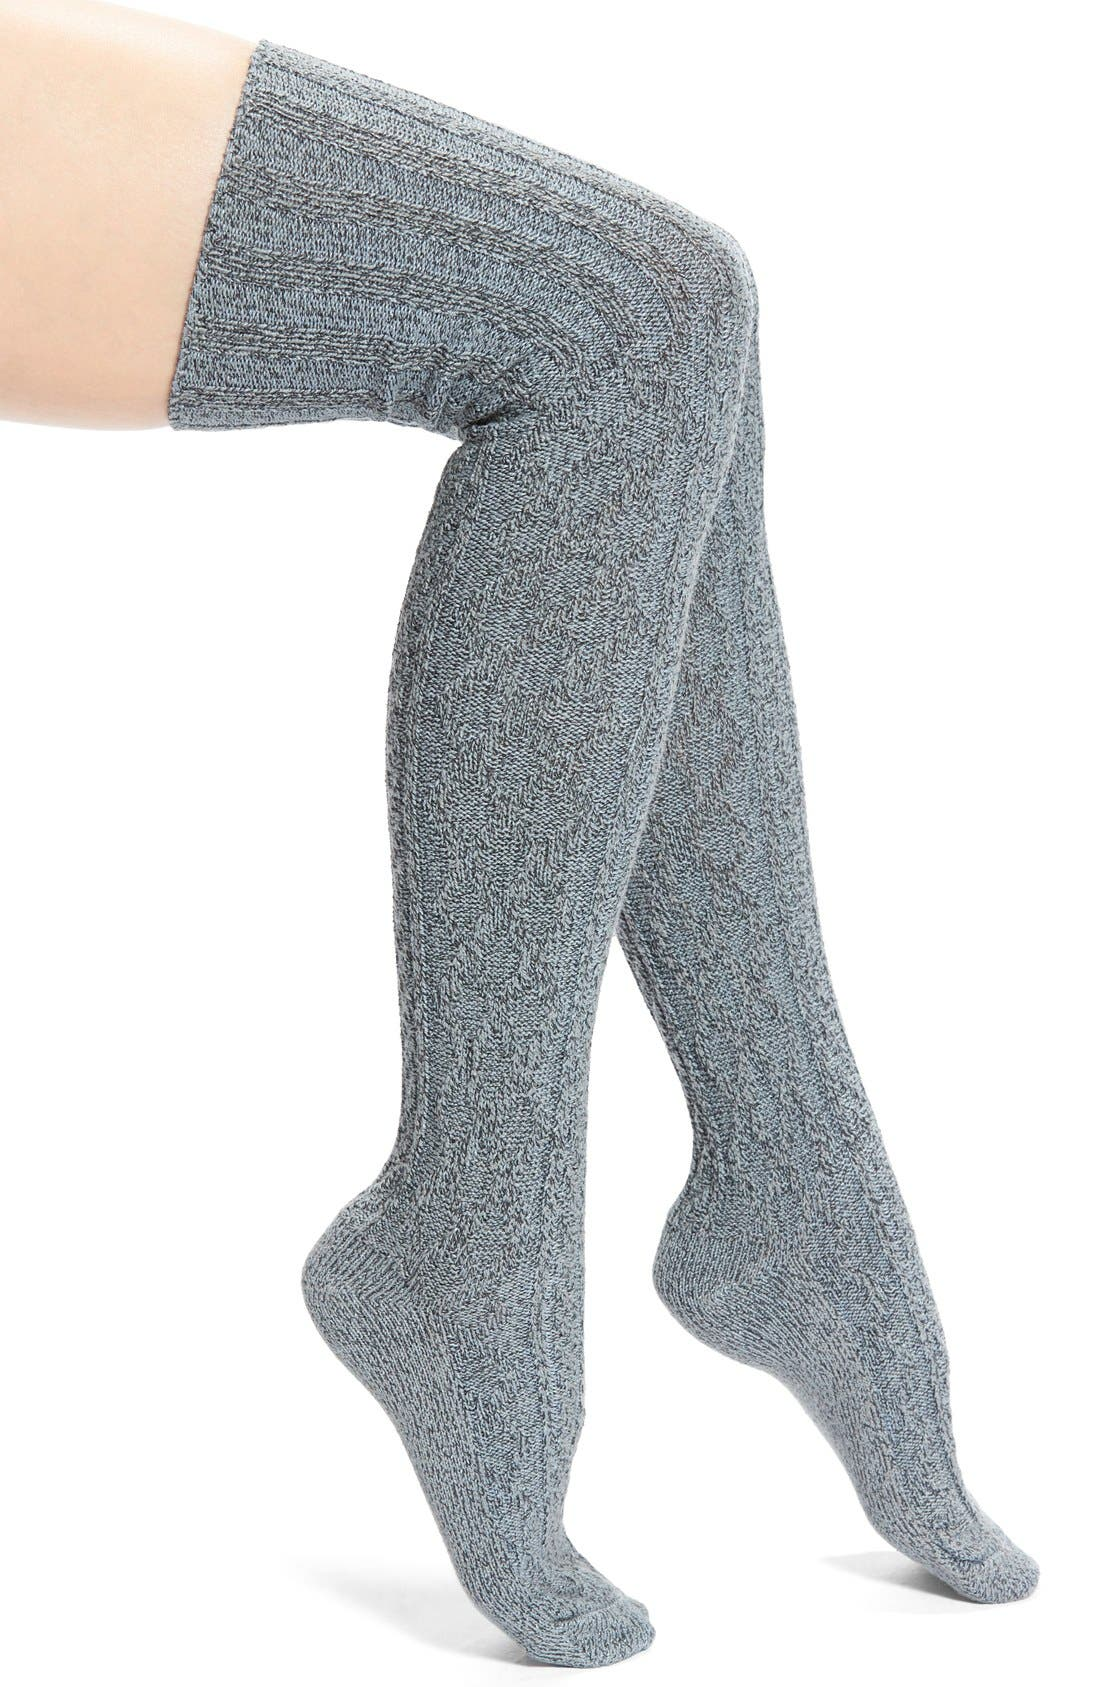 Marled Cable Knit Thigh High Socks,                         Main,                         color, 020